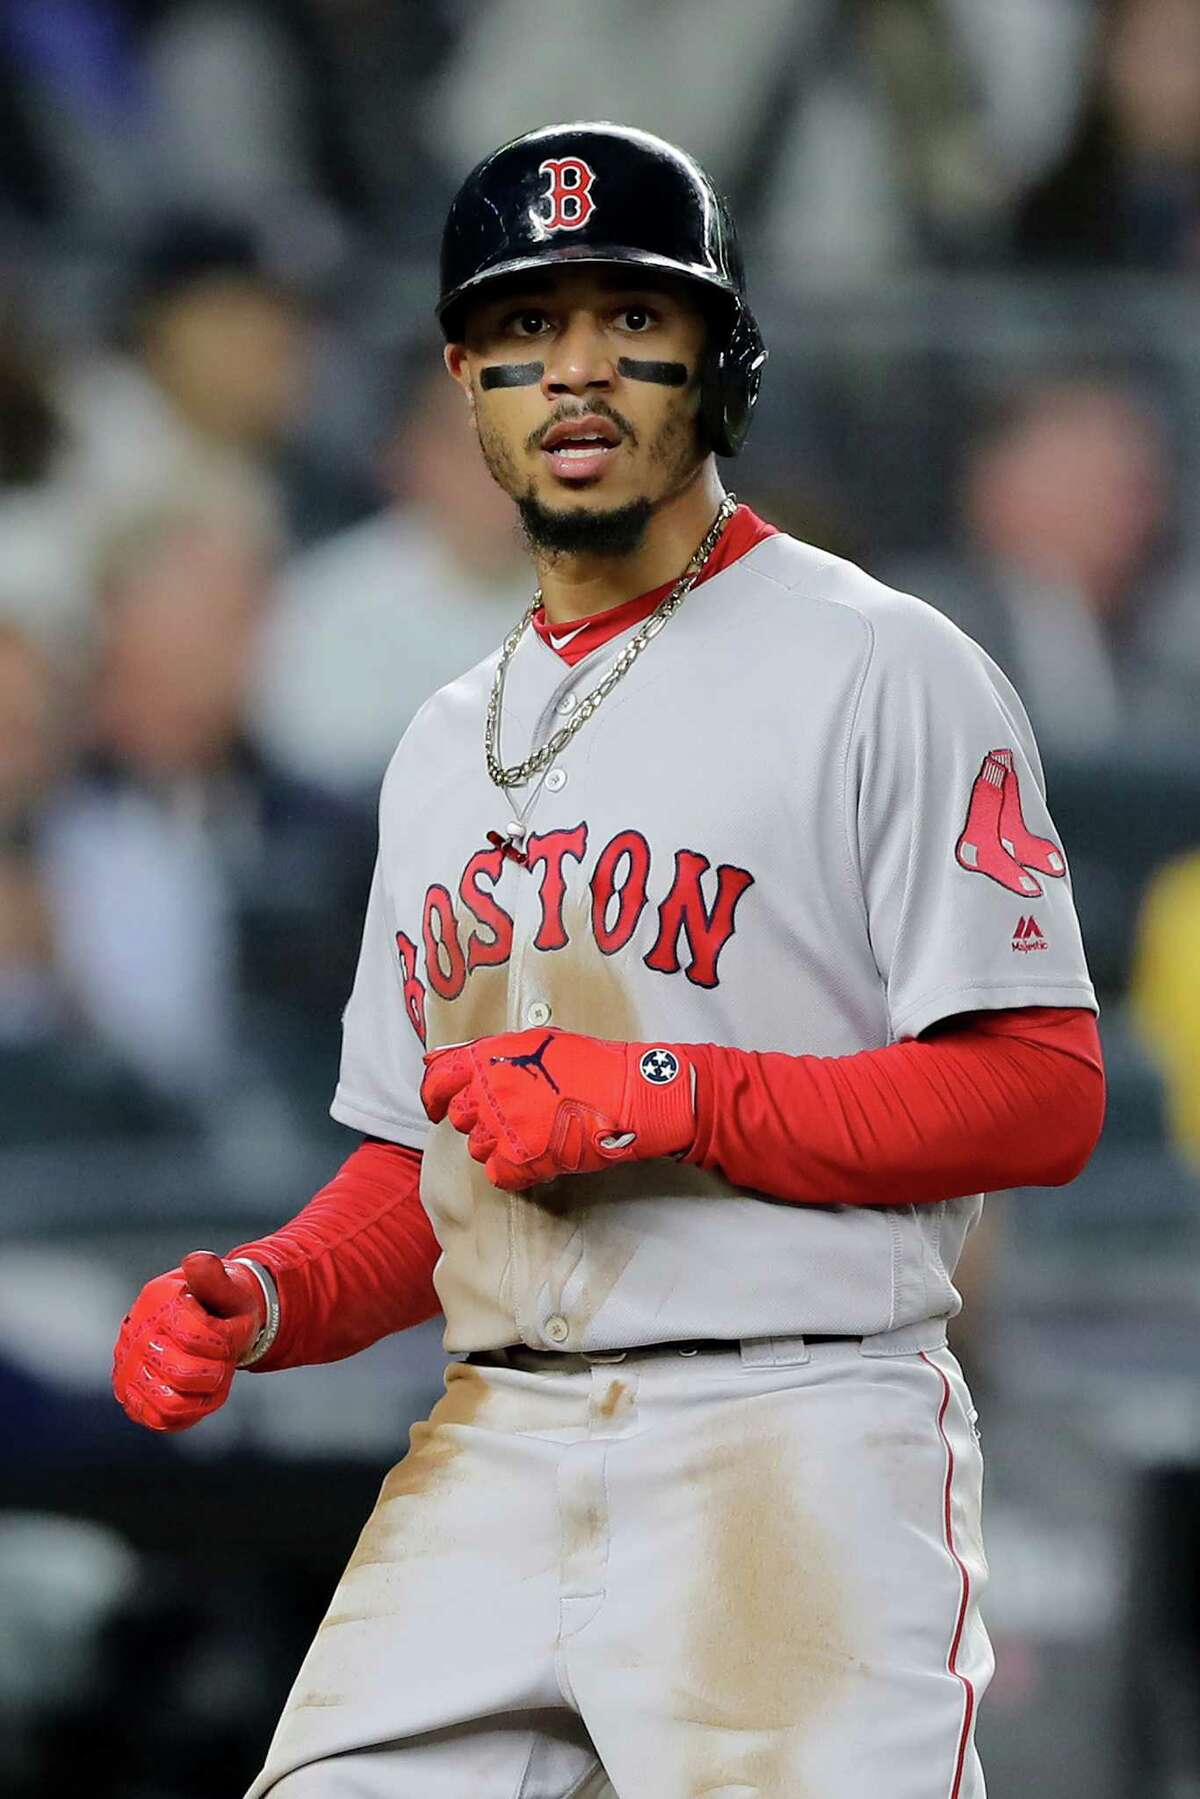 NEW YORK, NEW YORK - OCTOBER 08: Mookie Betts #50 of the Boston Red Sox celebrates after scoring a run off of a sac fly hit by J.D. Martinez #28 against the New York Yankees during the third inning in Game Three of the American League Division Series at Yankee Stadium on October 08, 2018 in the Bronx borough of New York City. (Photo by Elsa/Getty Images)